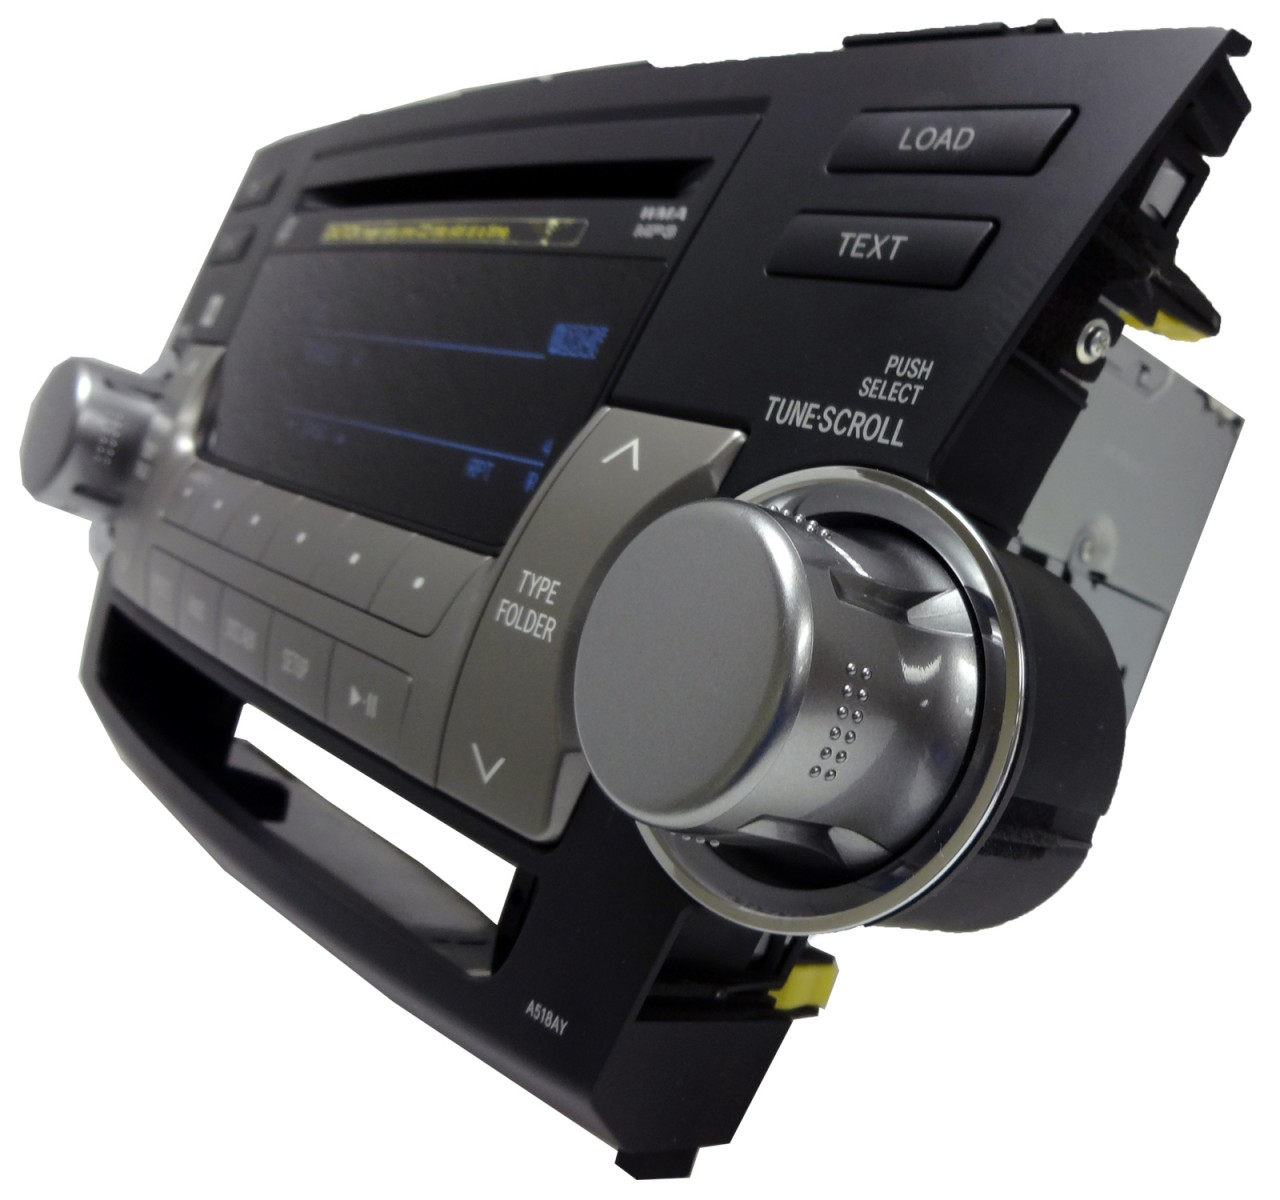 Zoom on Toyota Jbl Car Stereo For 2012